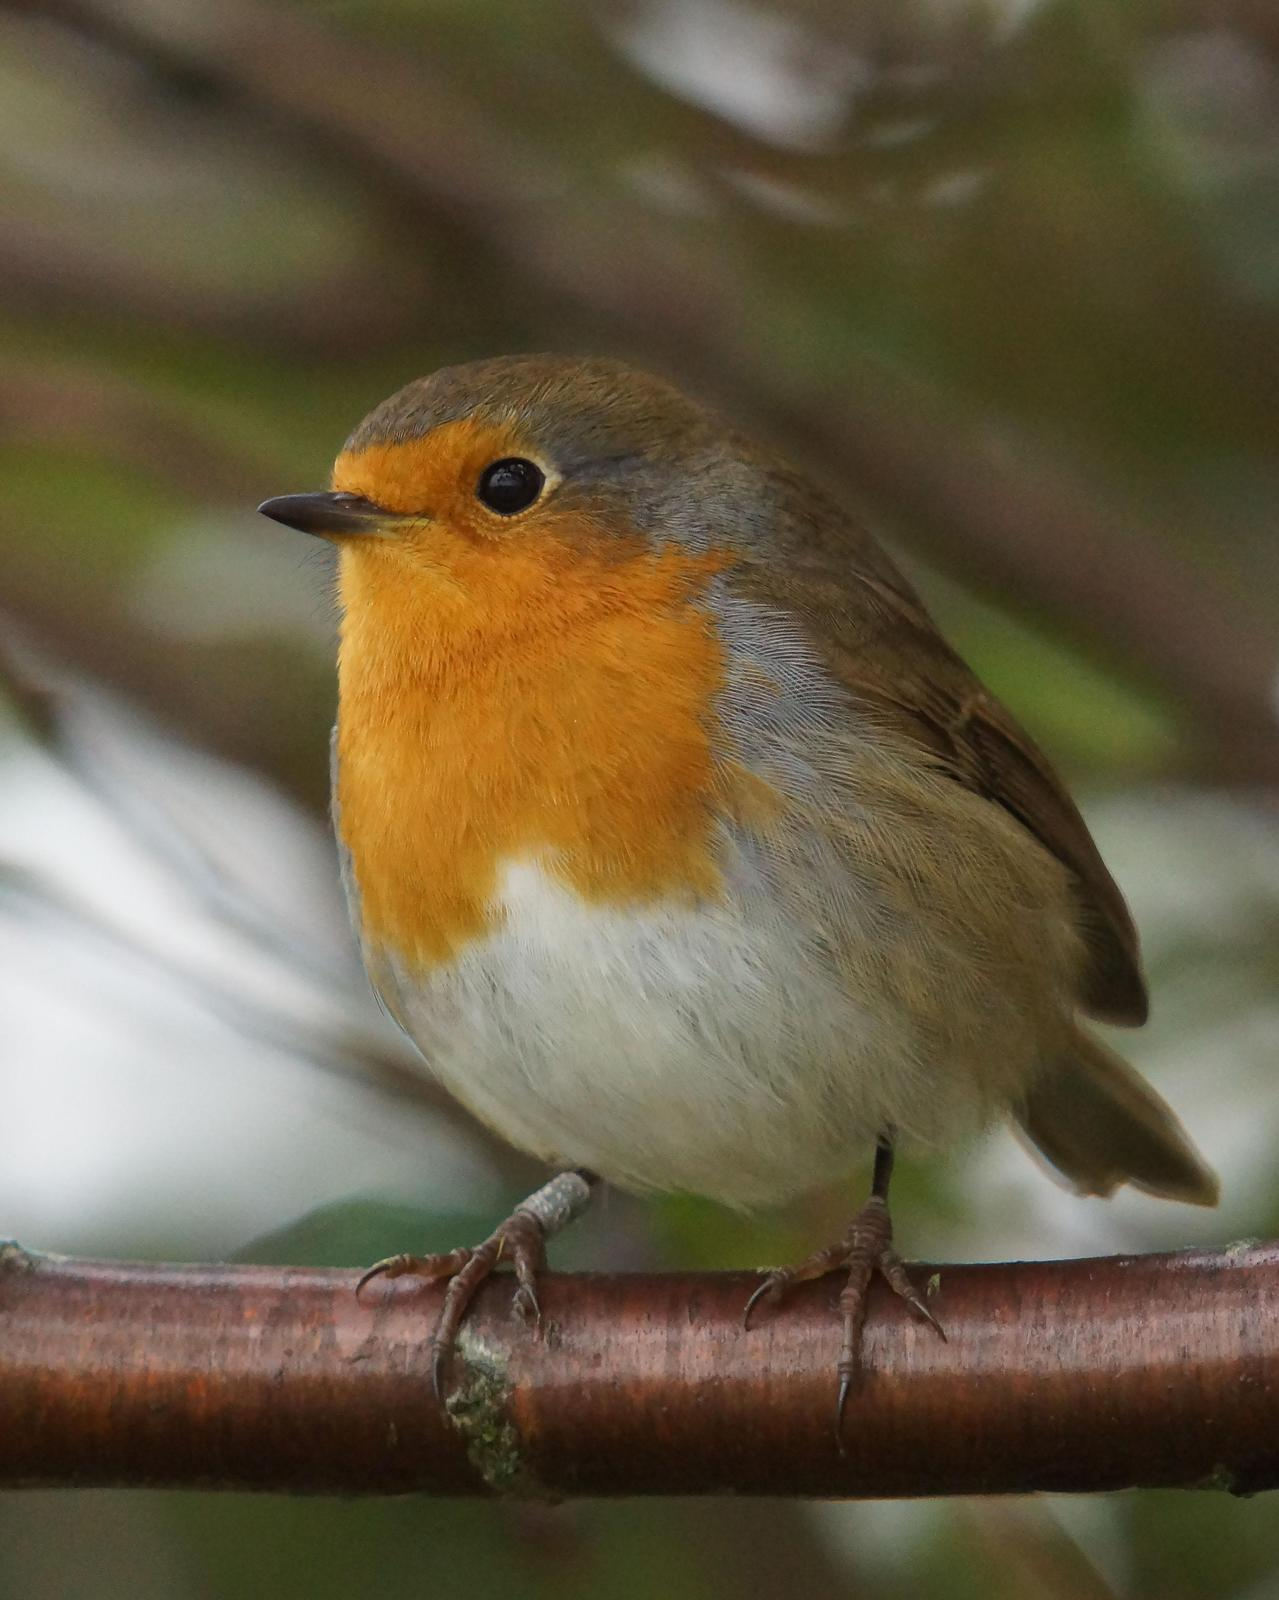 European Robin Photo by Steve Percival